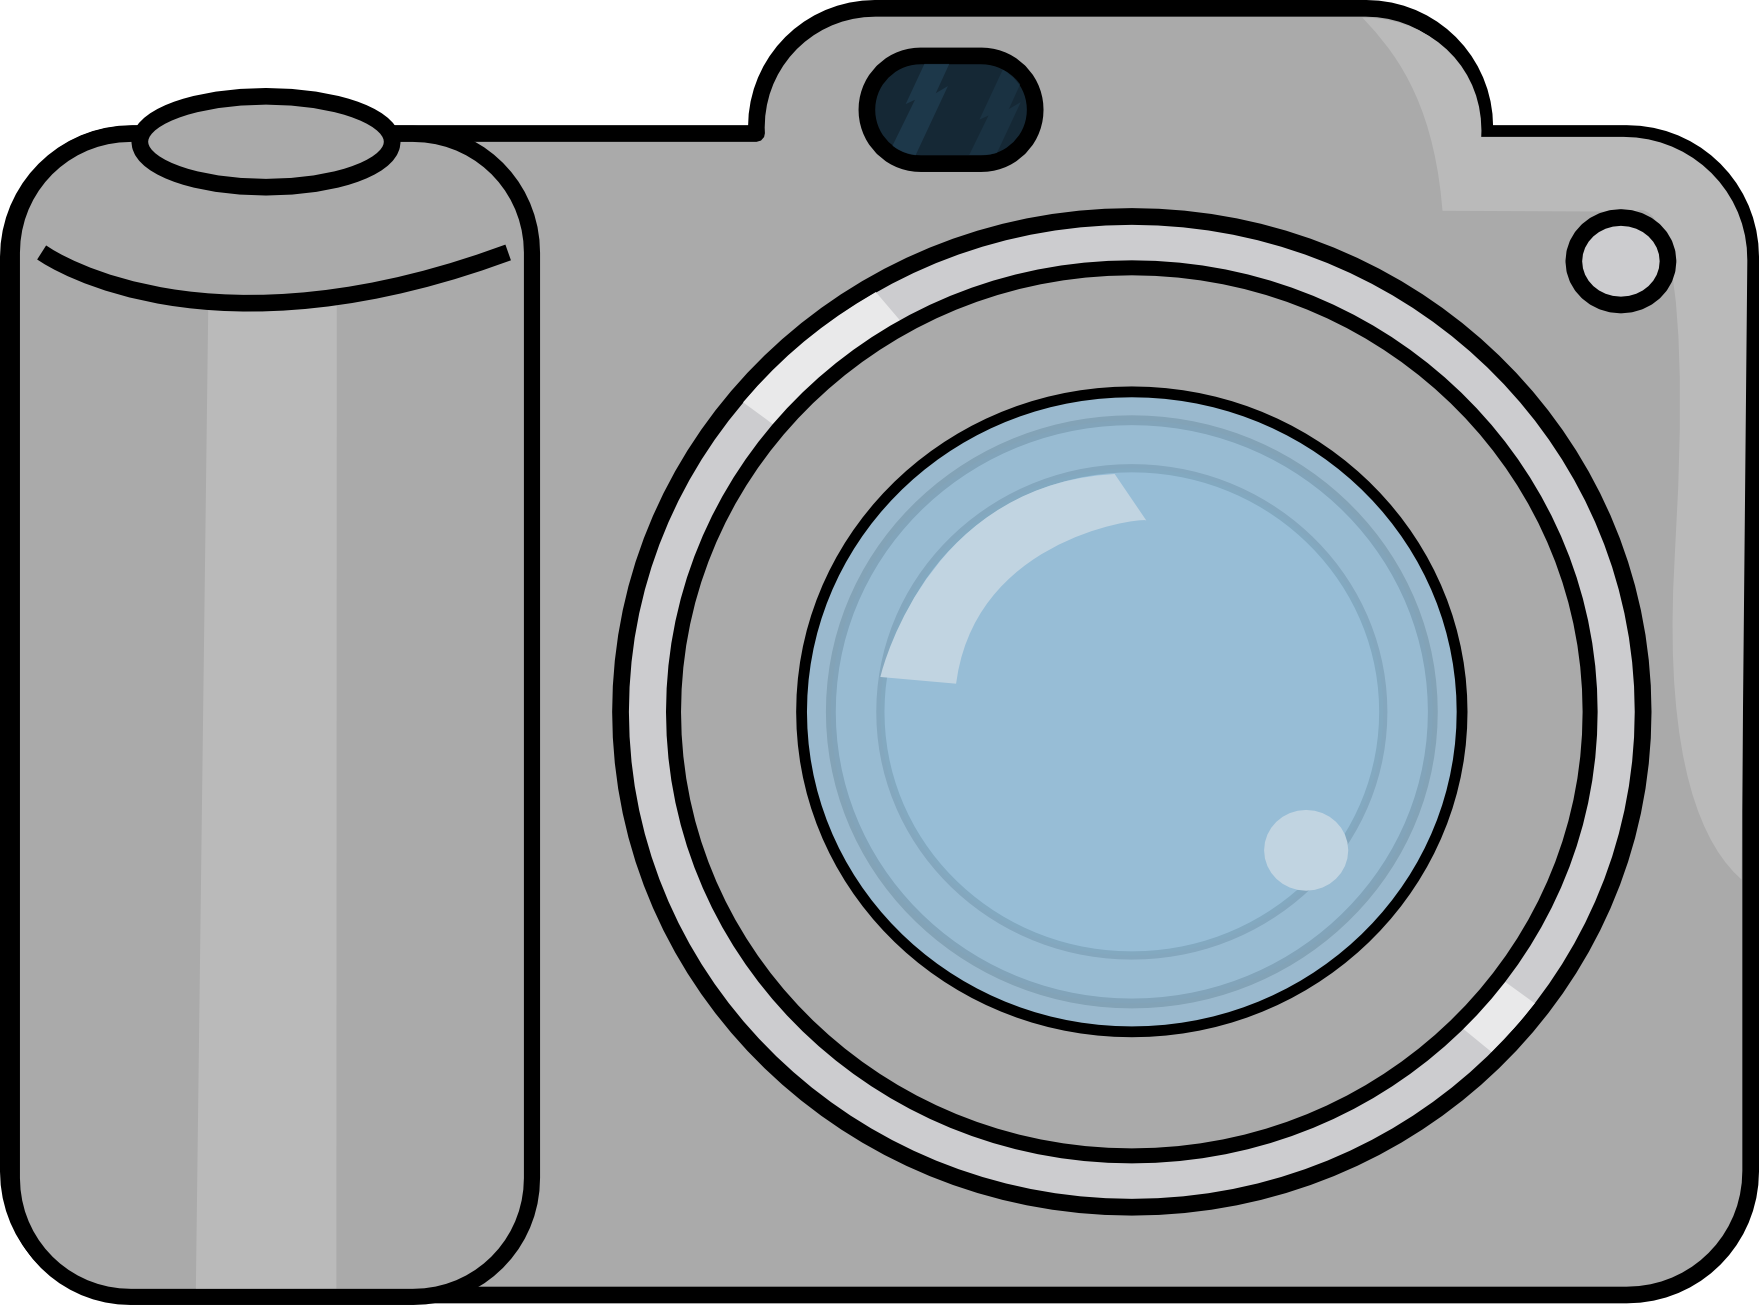 Camera clipart cute banner freeuse stock Free Camera Cliparts, Download Free Clip Art, Free Clip Art on ... banner freeuse stock